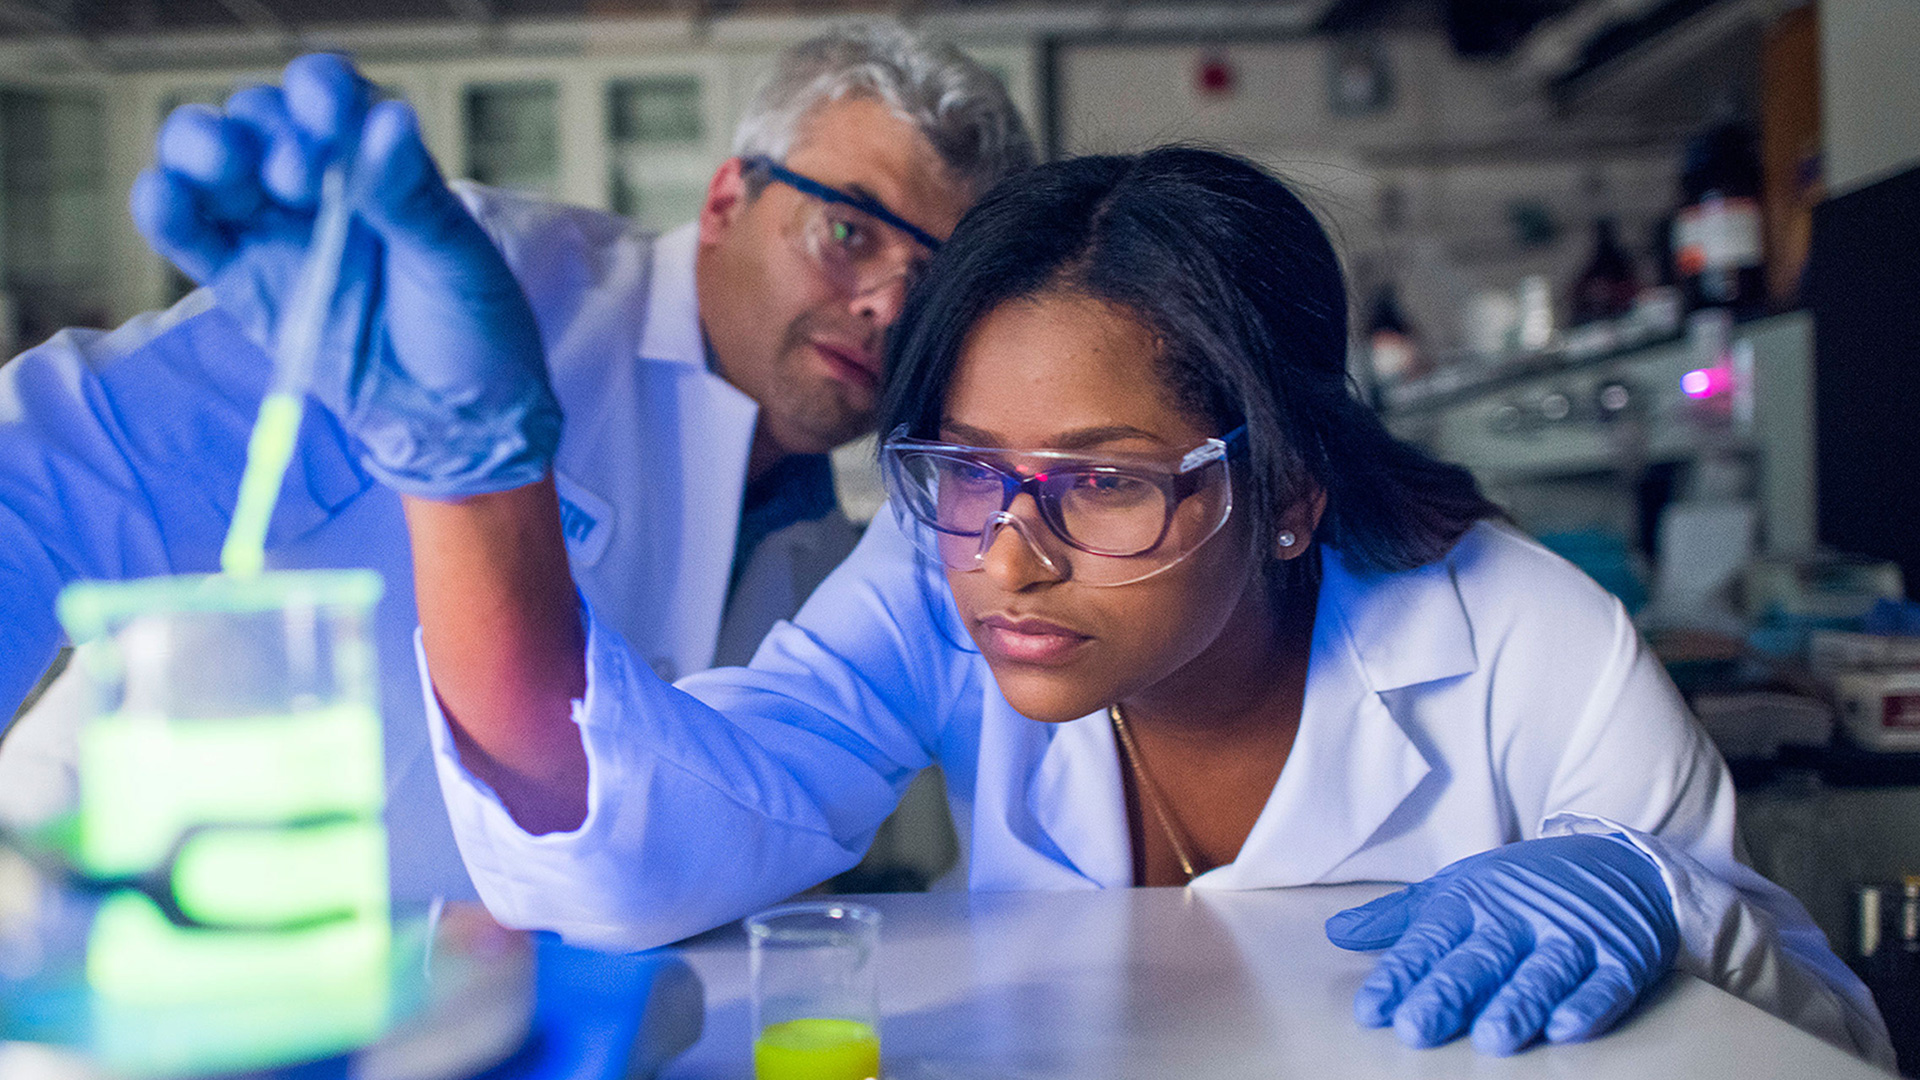 female student in a science lab with a beaker and professor